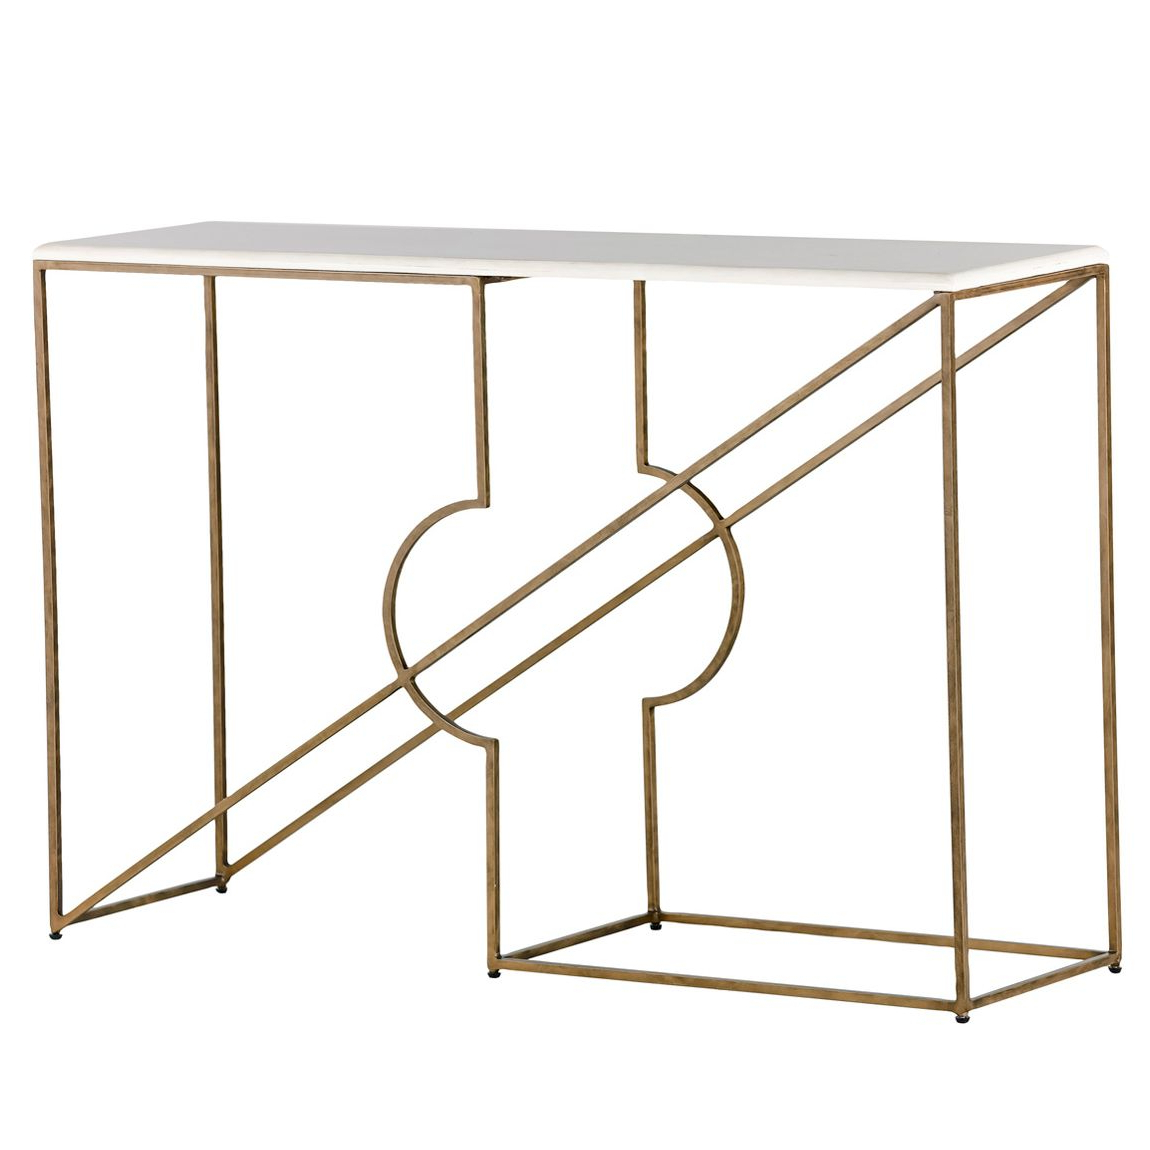 Gabby Furniture Galileo Console Table #laylagrayce | Laylagrayce Within Ventana Display Console Tables (View 5 of 20)